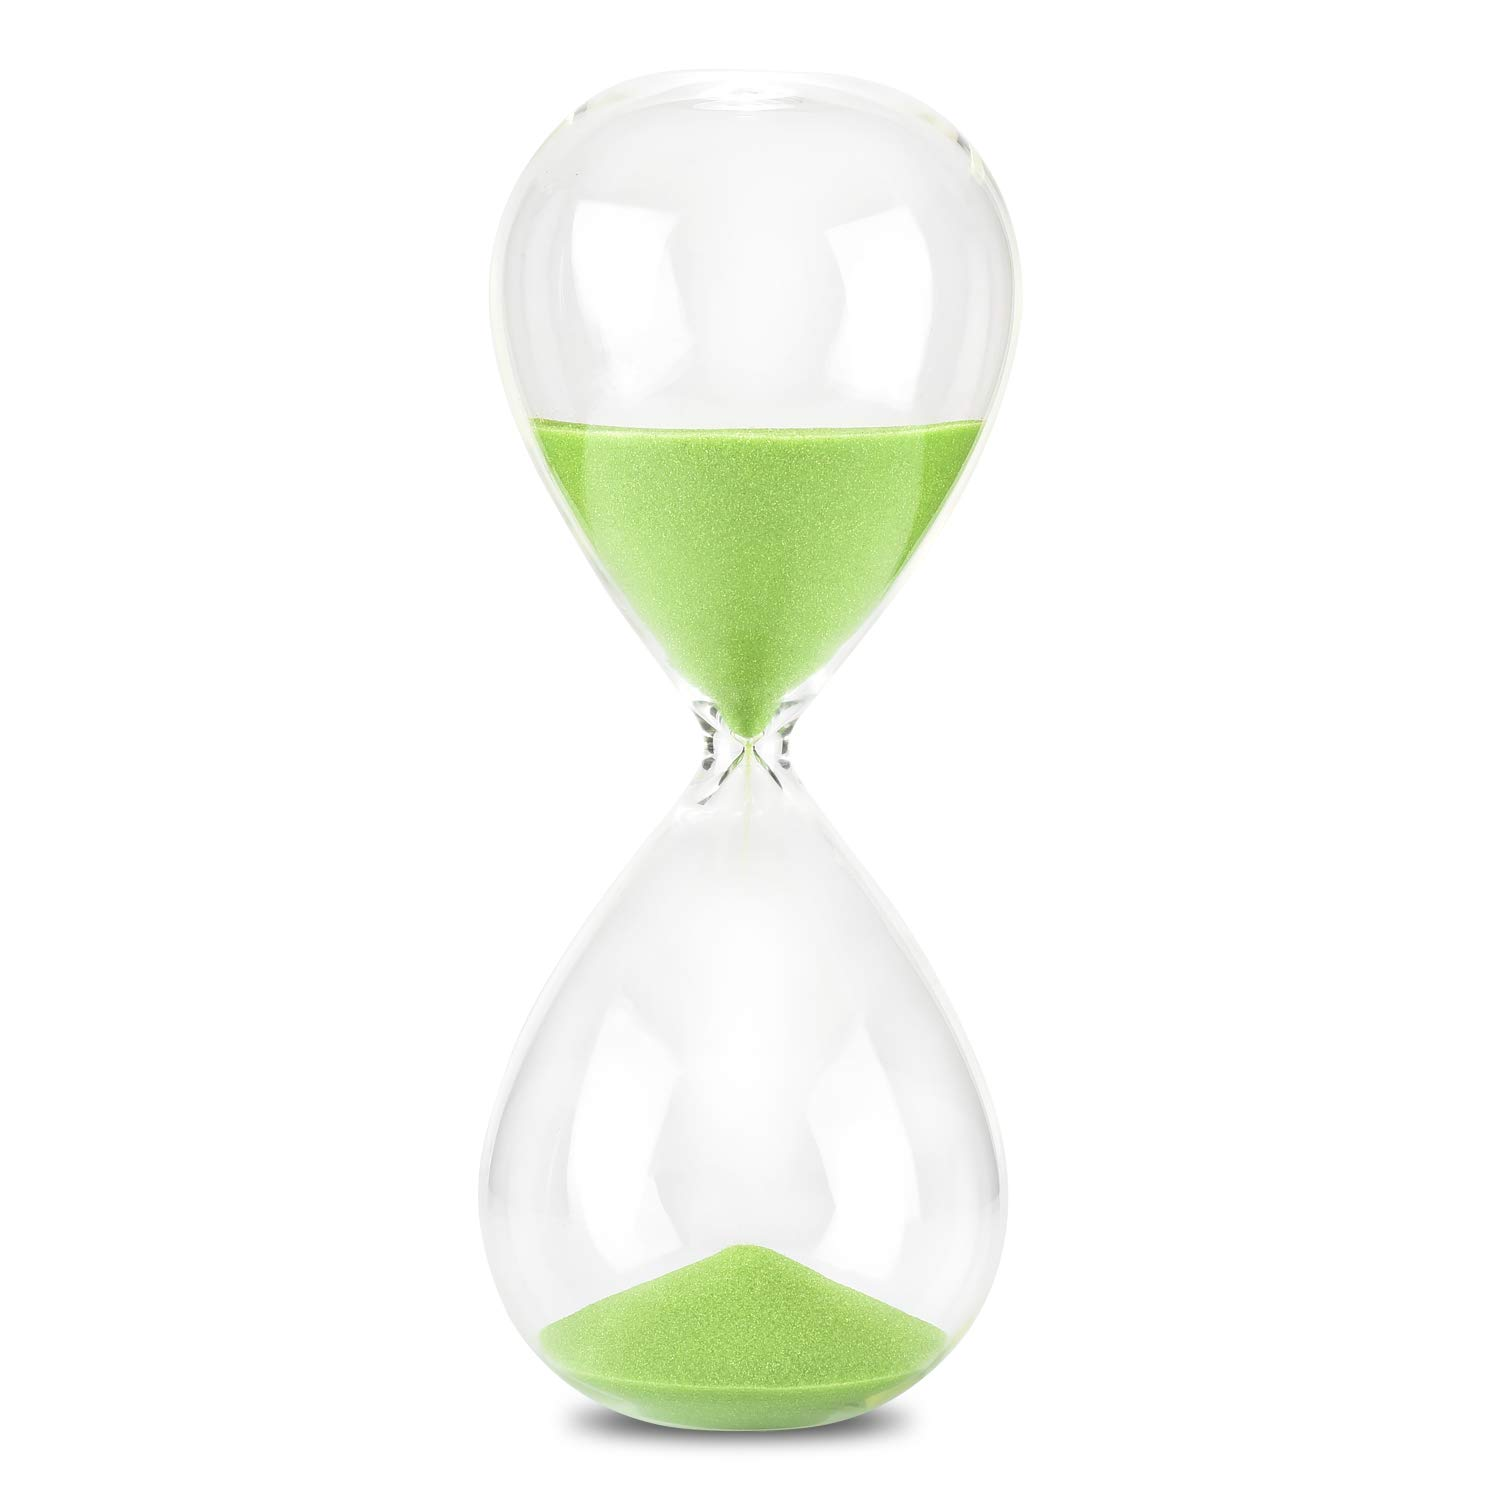 Hourglass Sand Timer, 7.8 INCH Glass Sandglass Hourglass Timer 30 Minutes for Home Office Desk Coffee Table Decor Holiday Gift